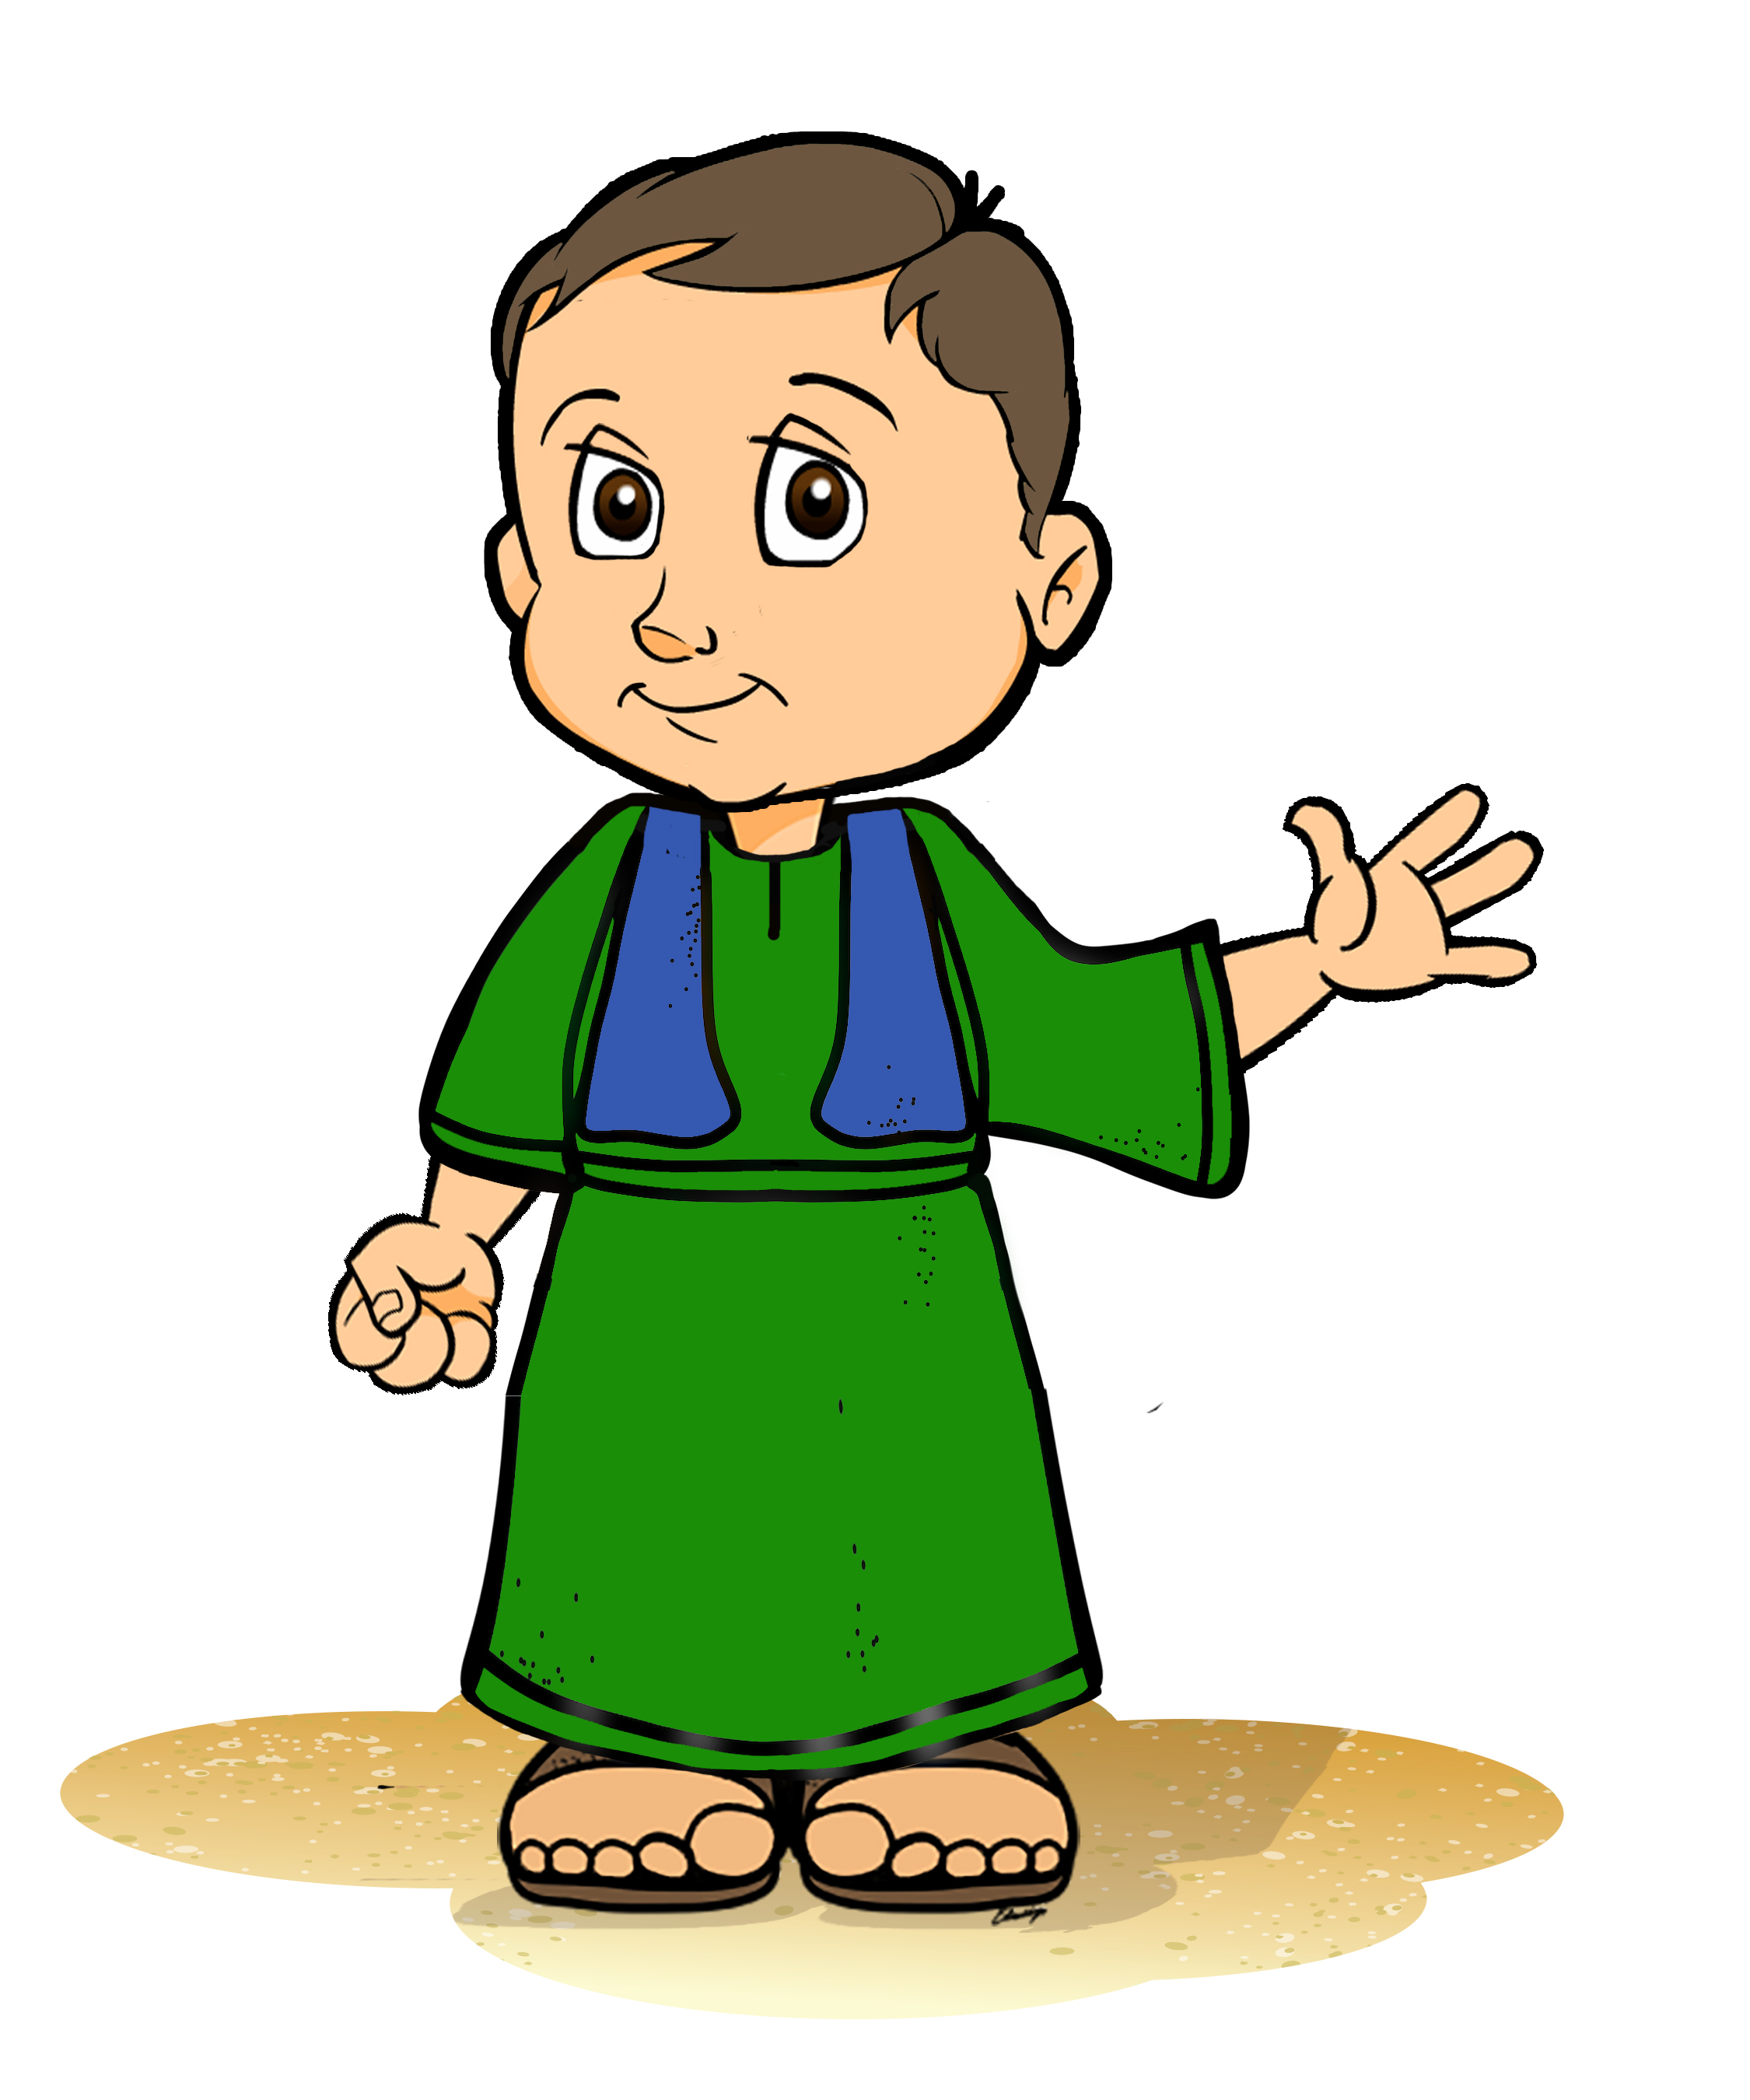 clipart bible people clipground bible characters clipart bible characters clipart